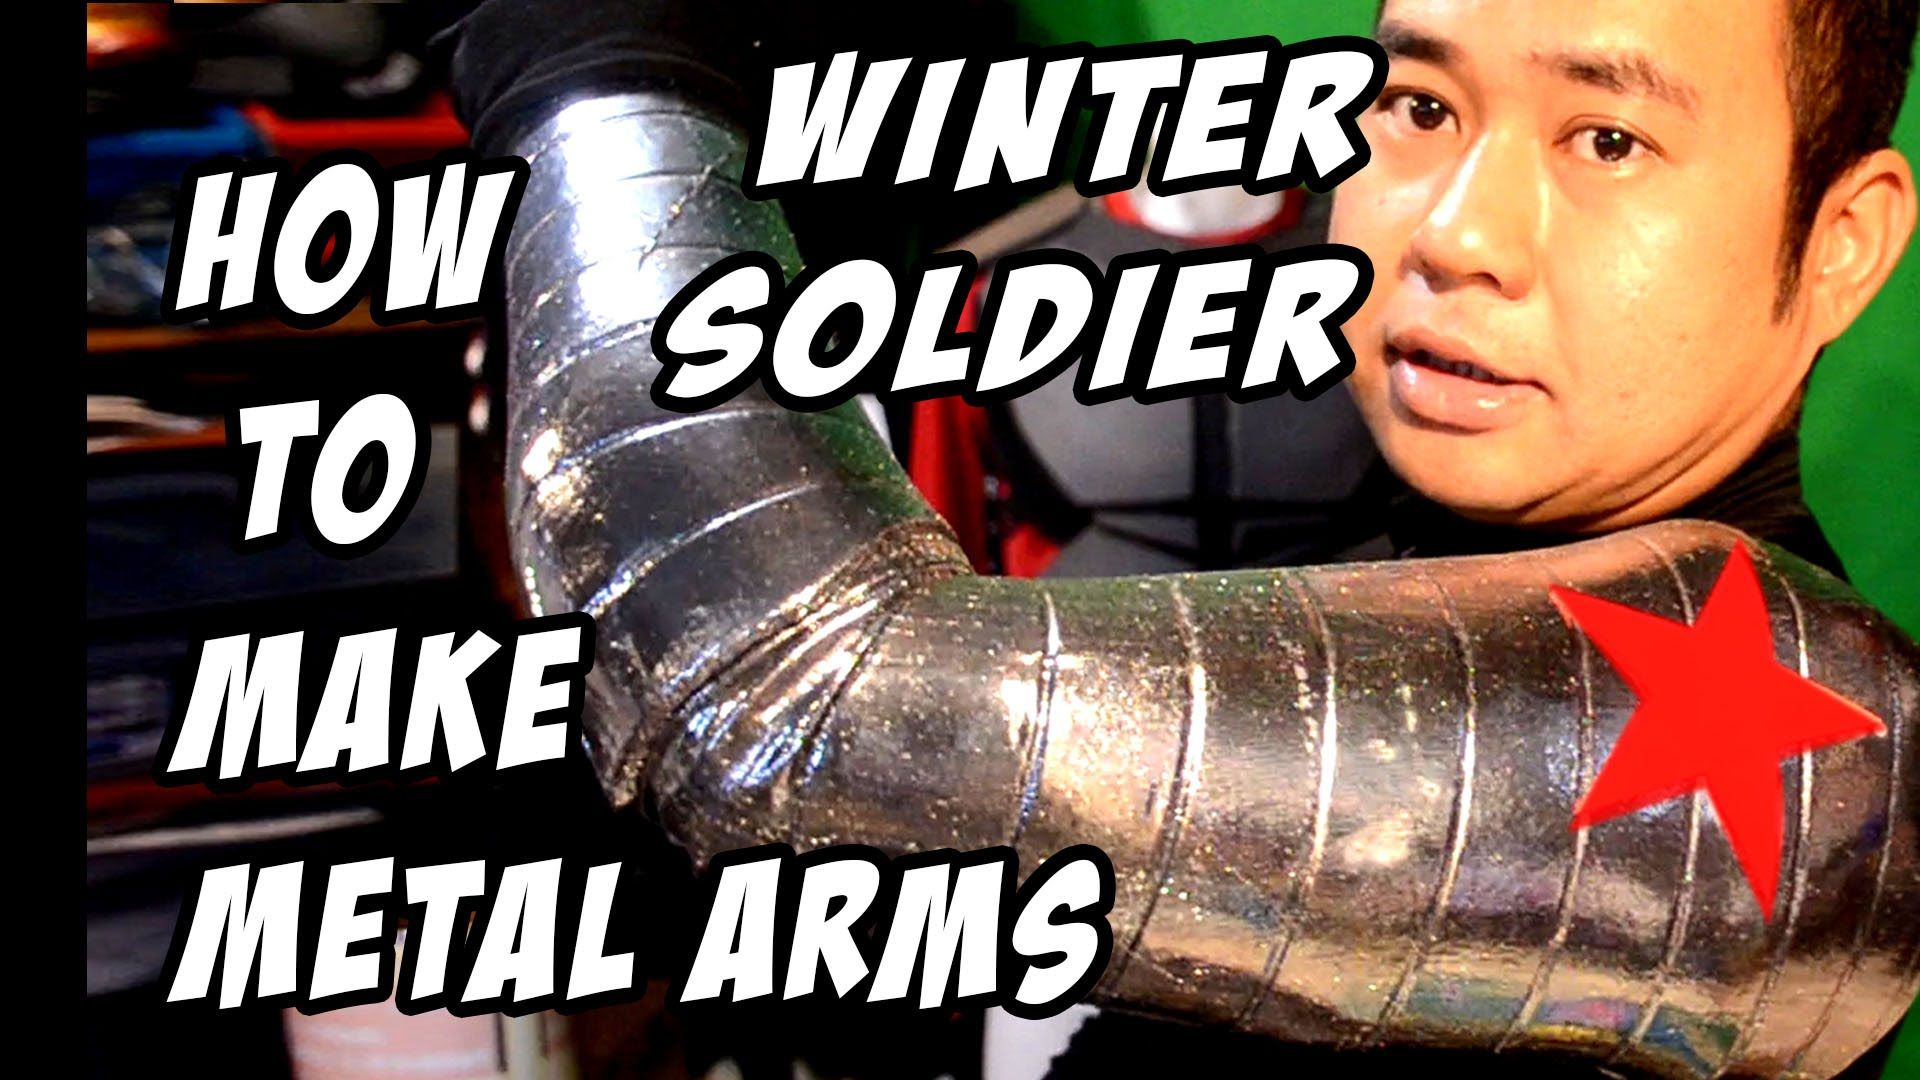 How to make winter soldier metal arm diy cosplay costume cosplay how to make winter soldier metal arm diy cosplay costume solutioingenieria Images